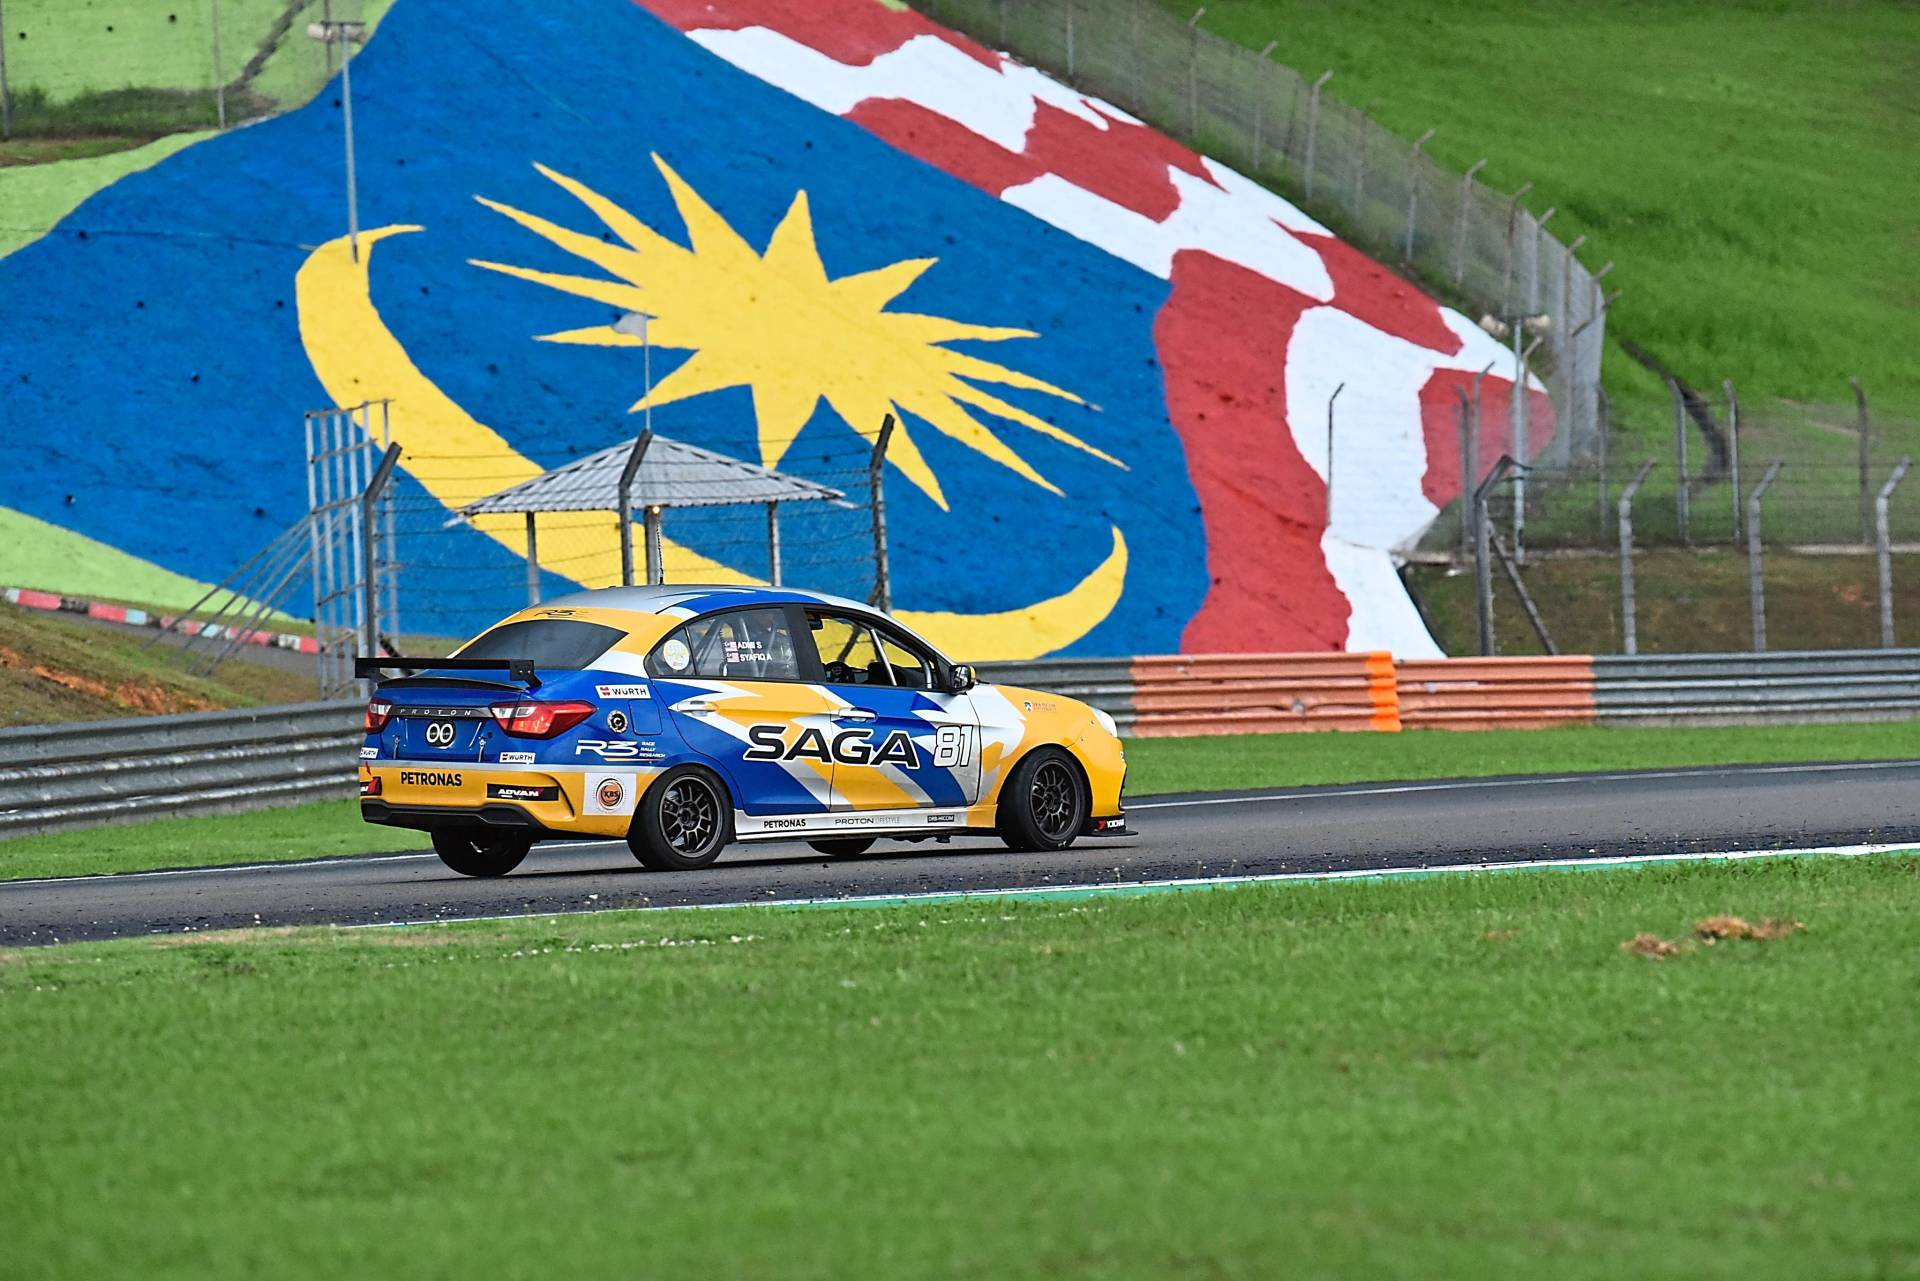 The 2019 Proton Saga driven by Syafiq and Admi finishing in second place.